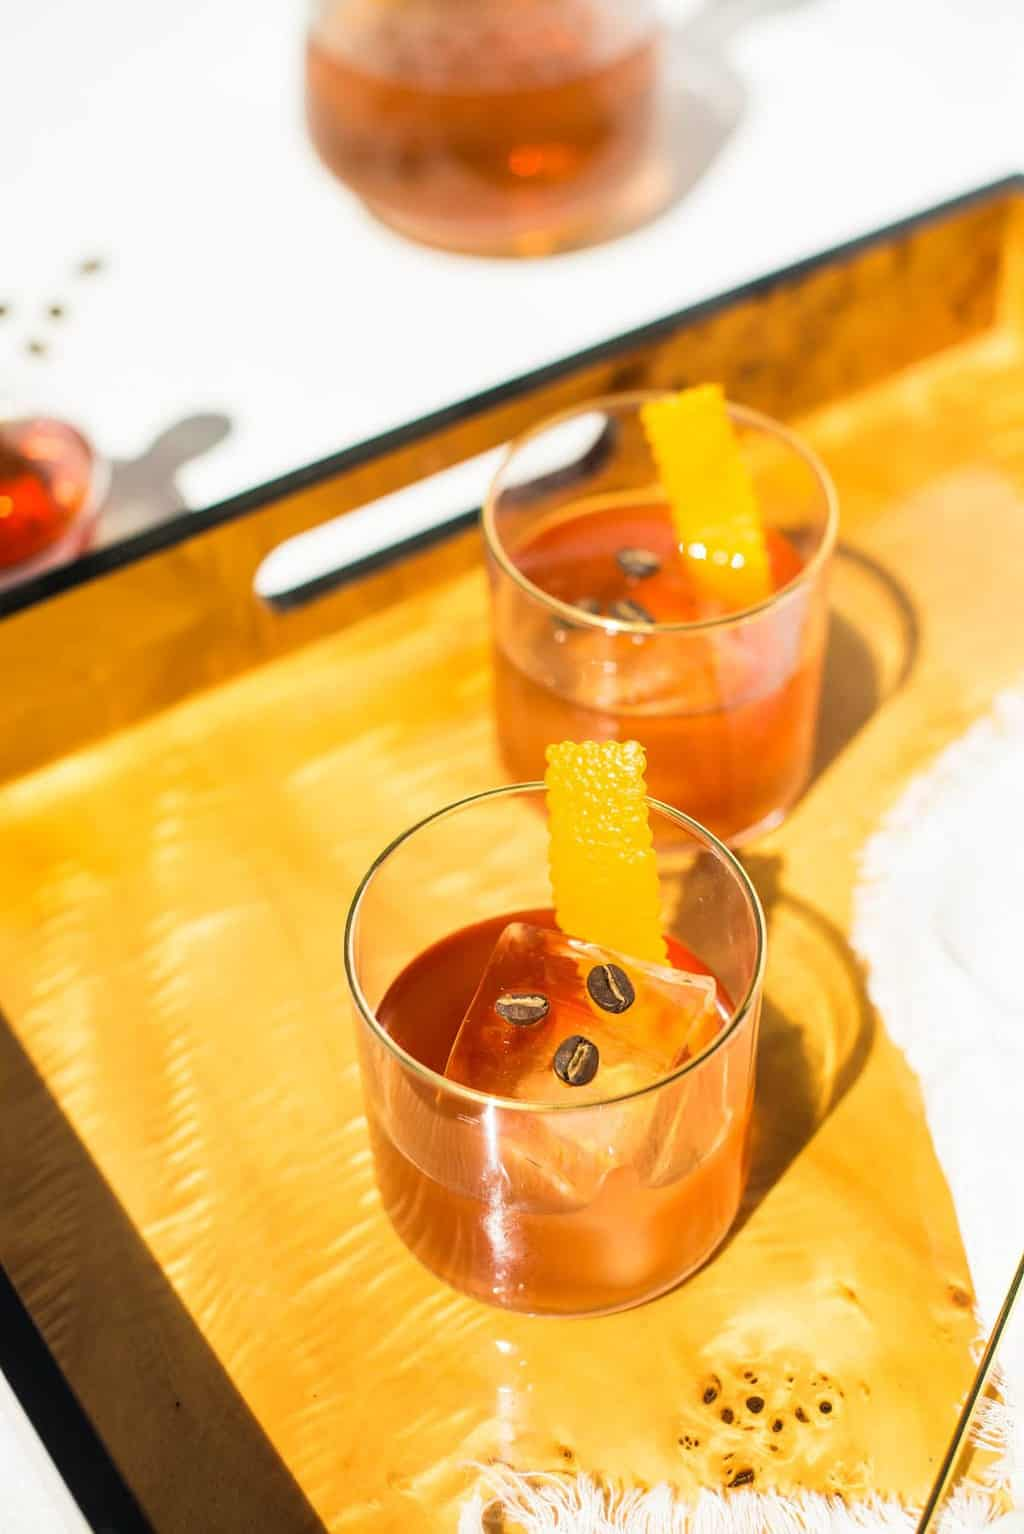 Coffee Old Fashioned Cocktail Recipe by top Houston lifestyle blogger Ashley Rose of Sugar & Cloth